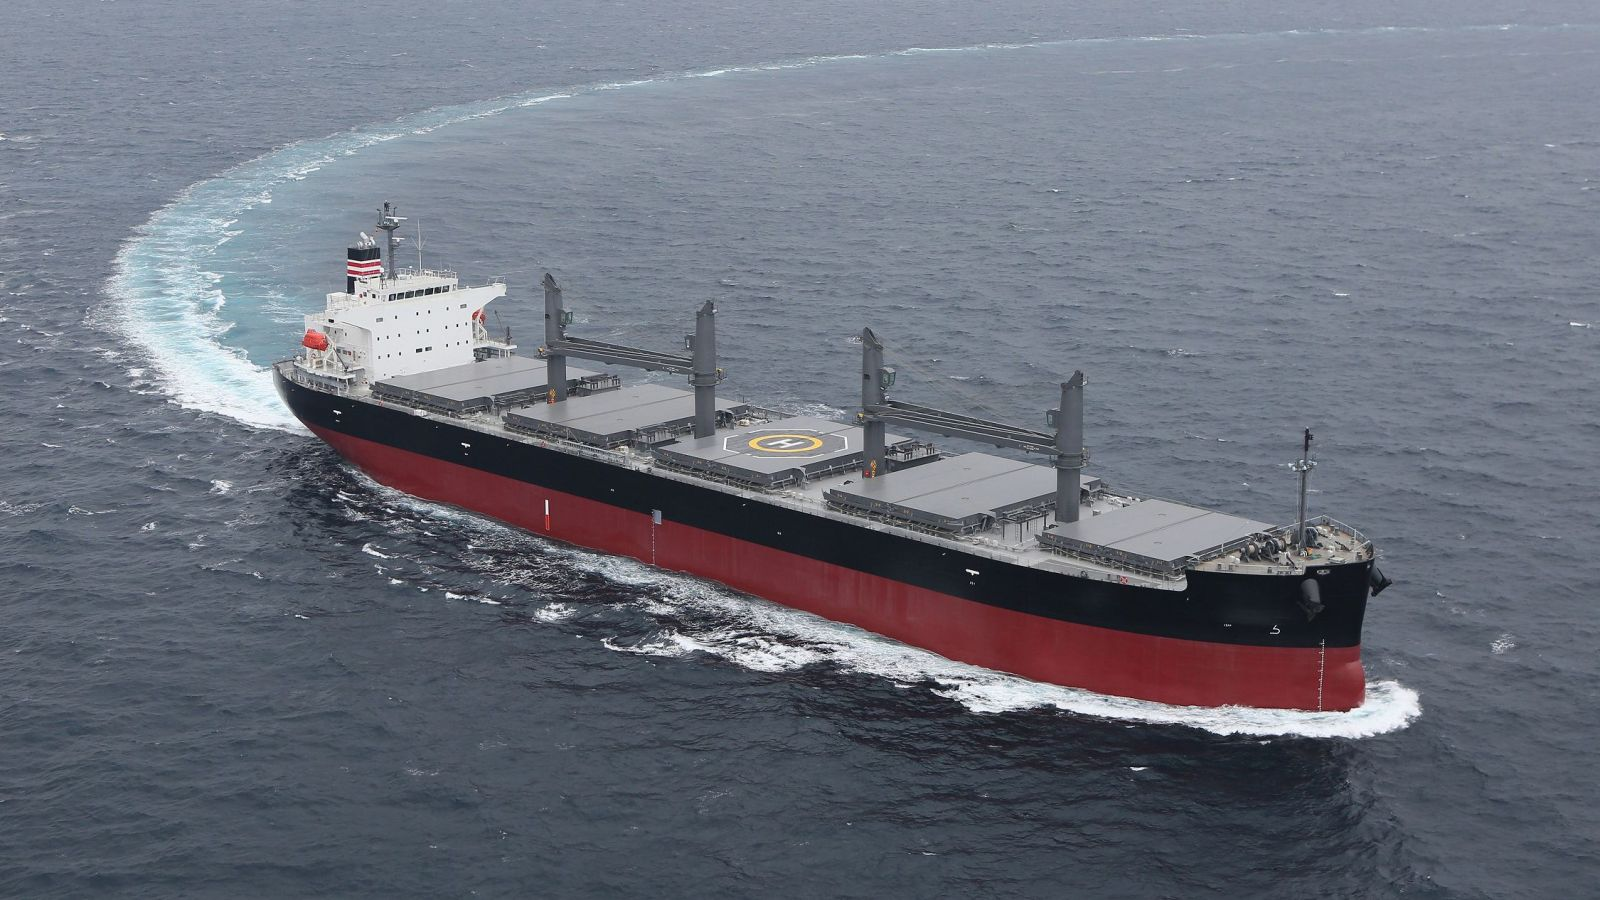 The NYK BP Handymax Bulk Carriers which will be equipped with Wärtsilä scrubbers to be built at Oshima Shipyard - image courtesy of NYK BP